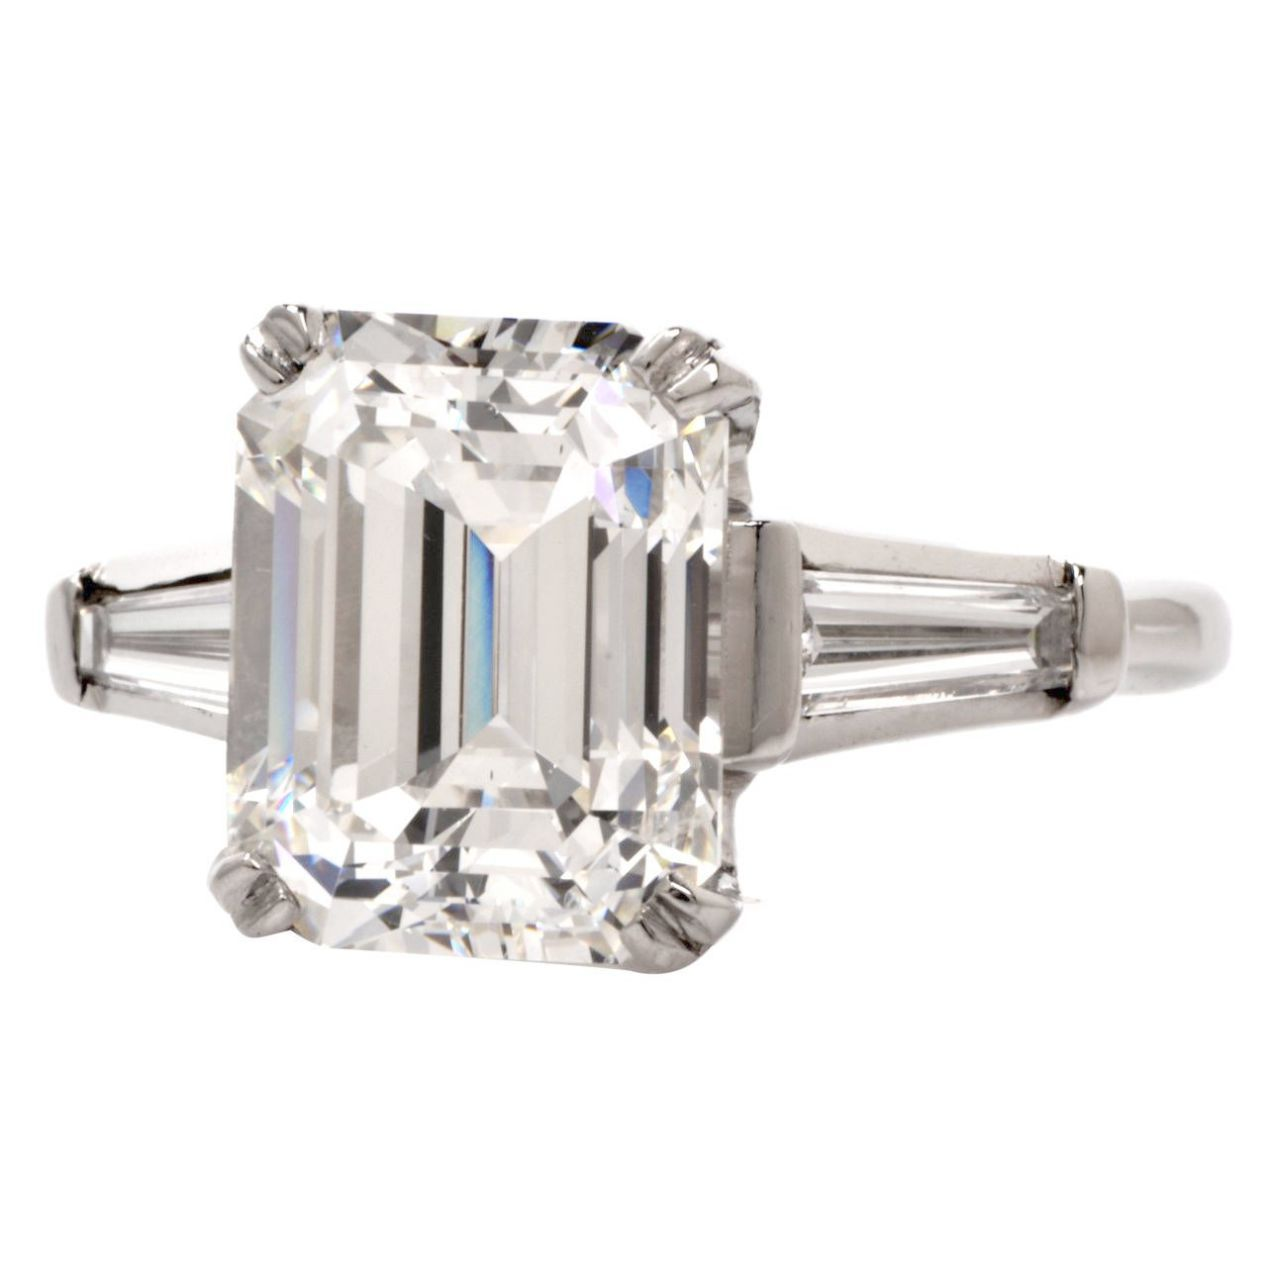 Jewelry stores near me that buy diamonds under the